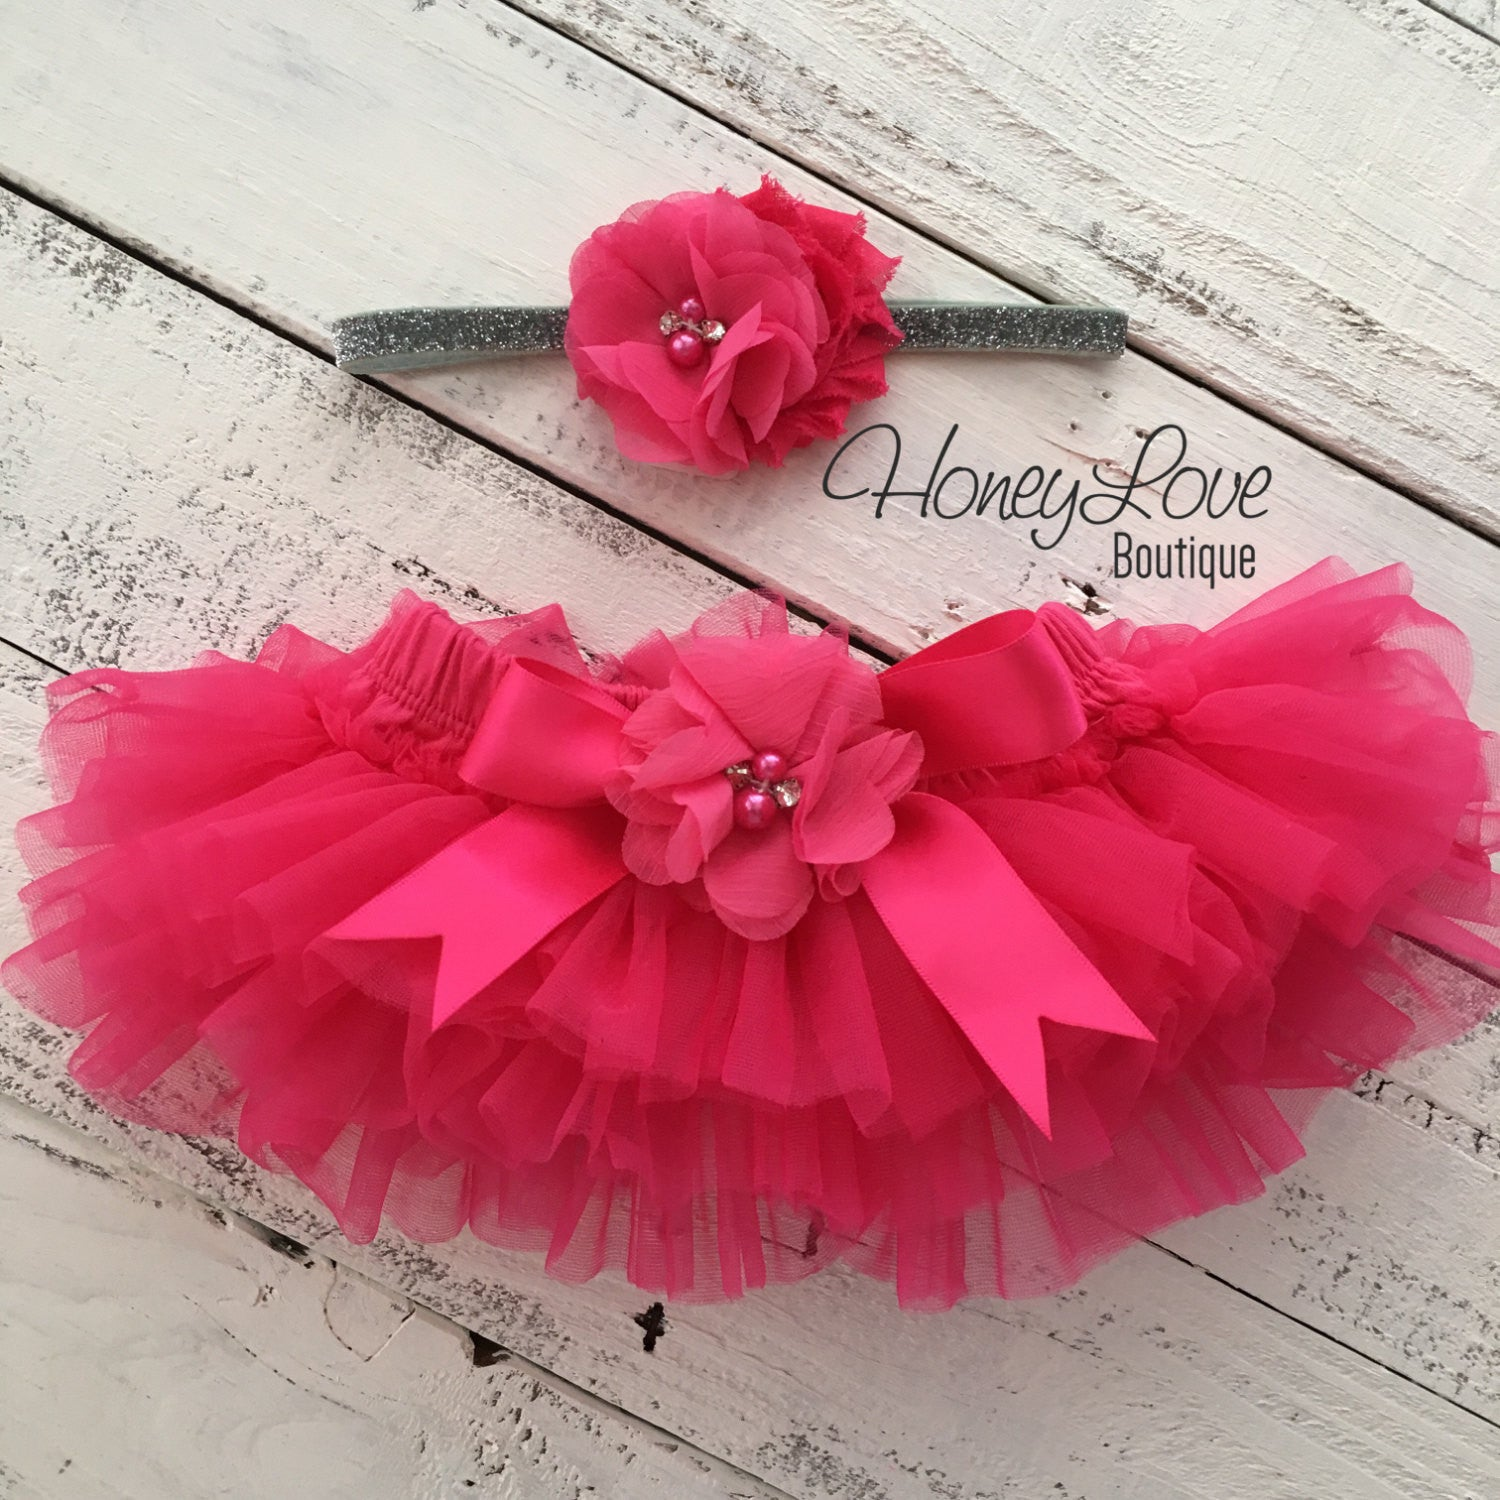 a874e4d364 ... Watermelon Pink tutu skirt bloomers and silver glitter headband - embellished  bloomer - HoneyLoveBoutique ...